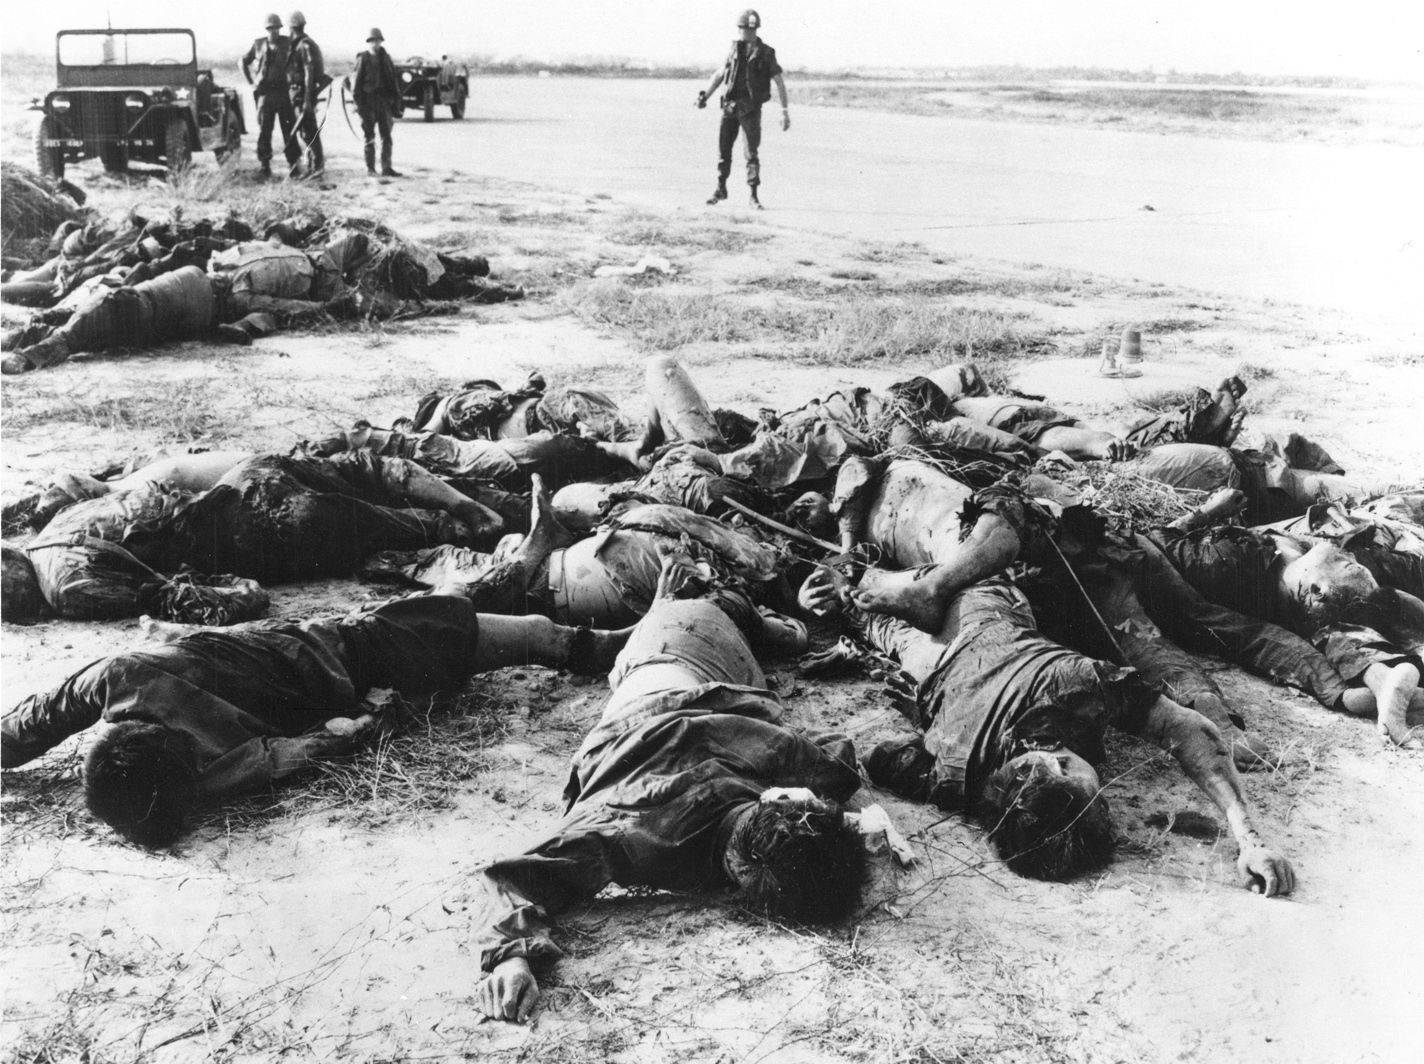 the My Lai Massacre was a search and destroy mission that went wrong when the US ended up killing thousands of women and children with no vietcong connections.  Word of this back in the US caused protests against the war.